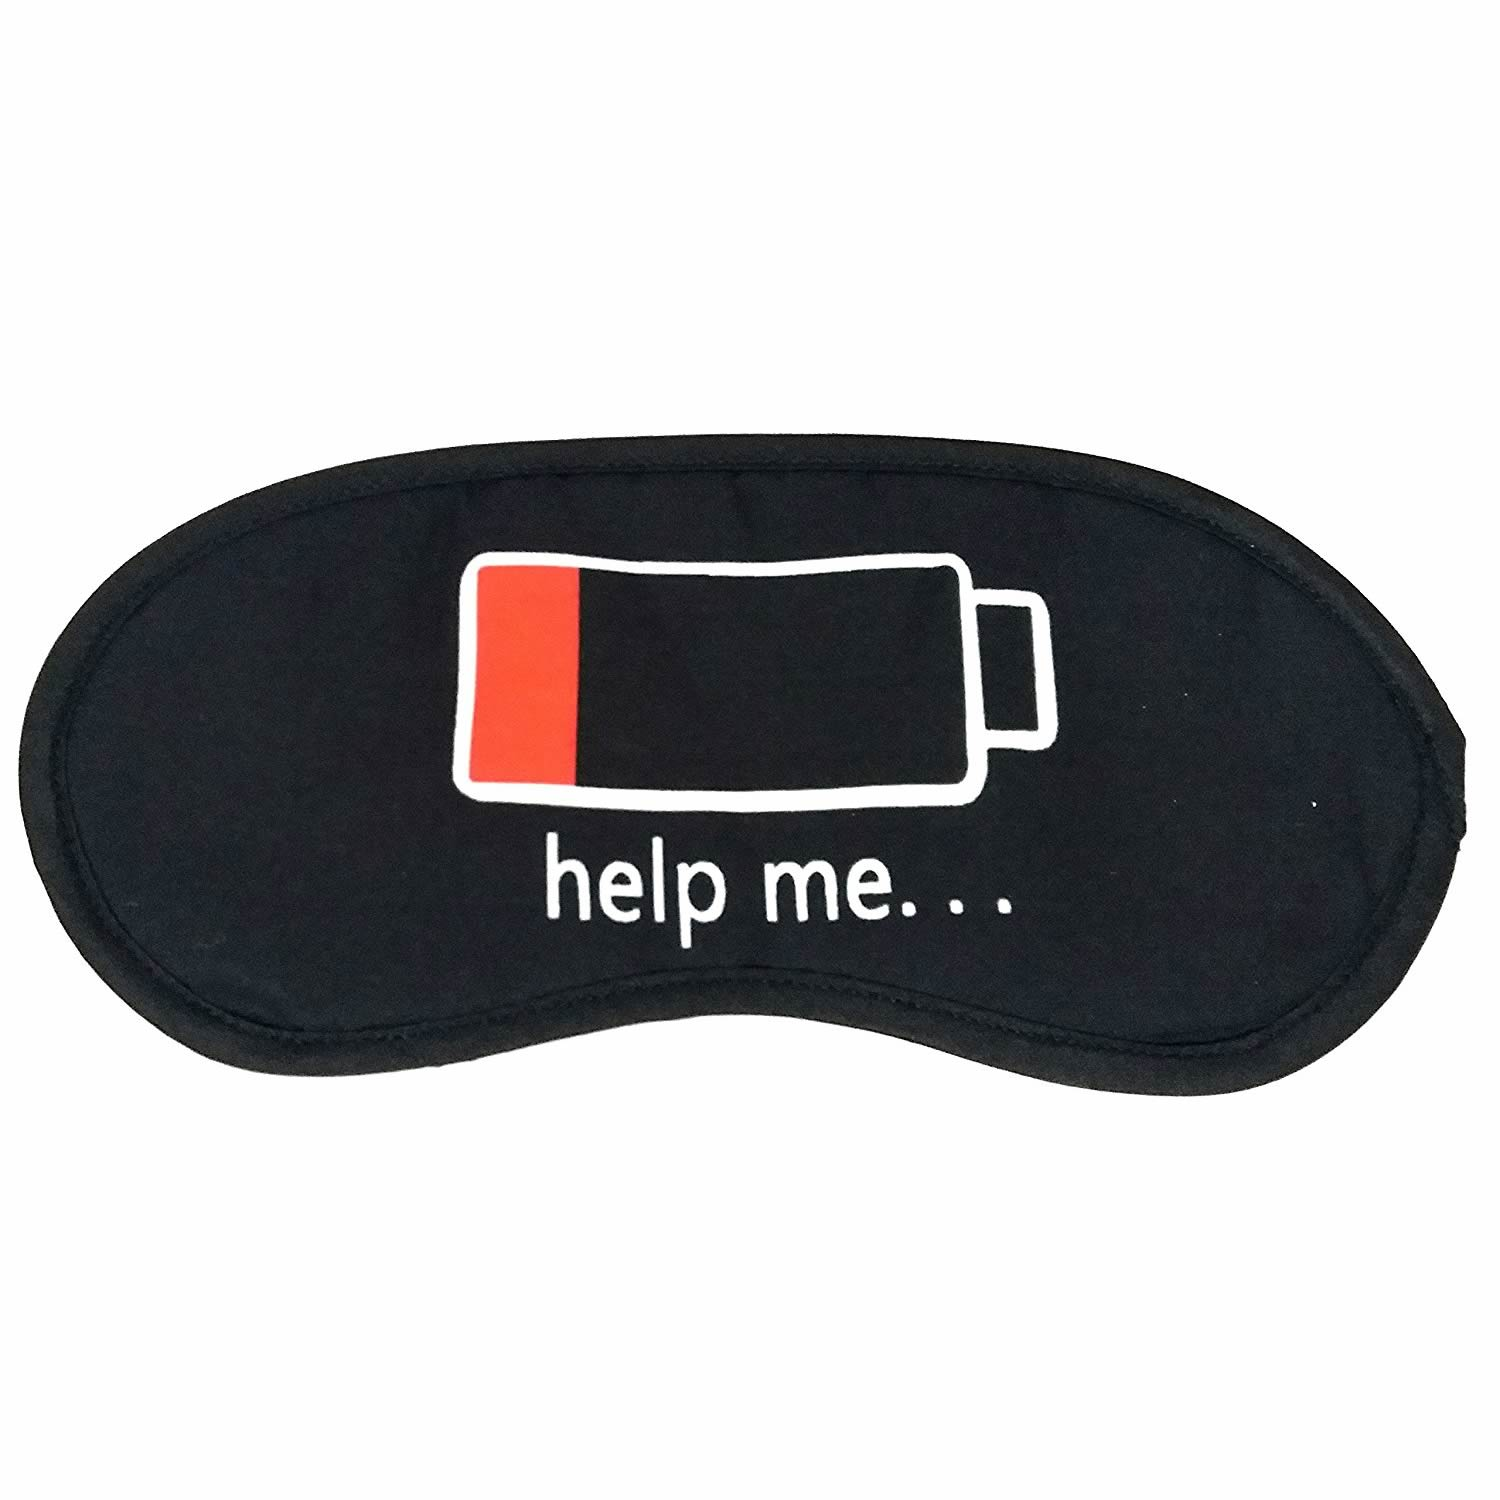 75dba4000 Littledesire Battery Down Help Me Sleep Eye mask